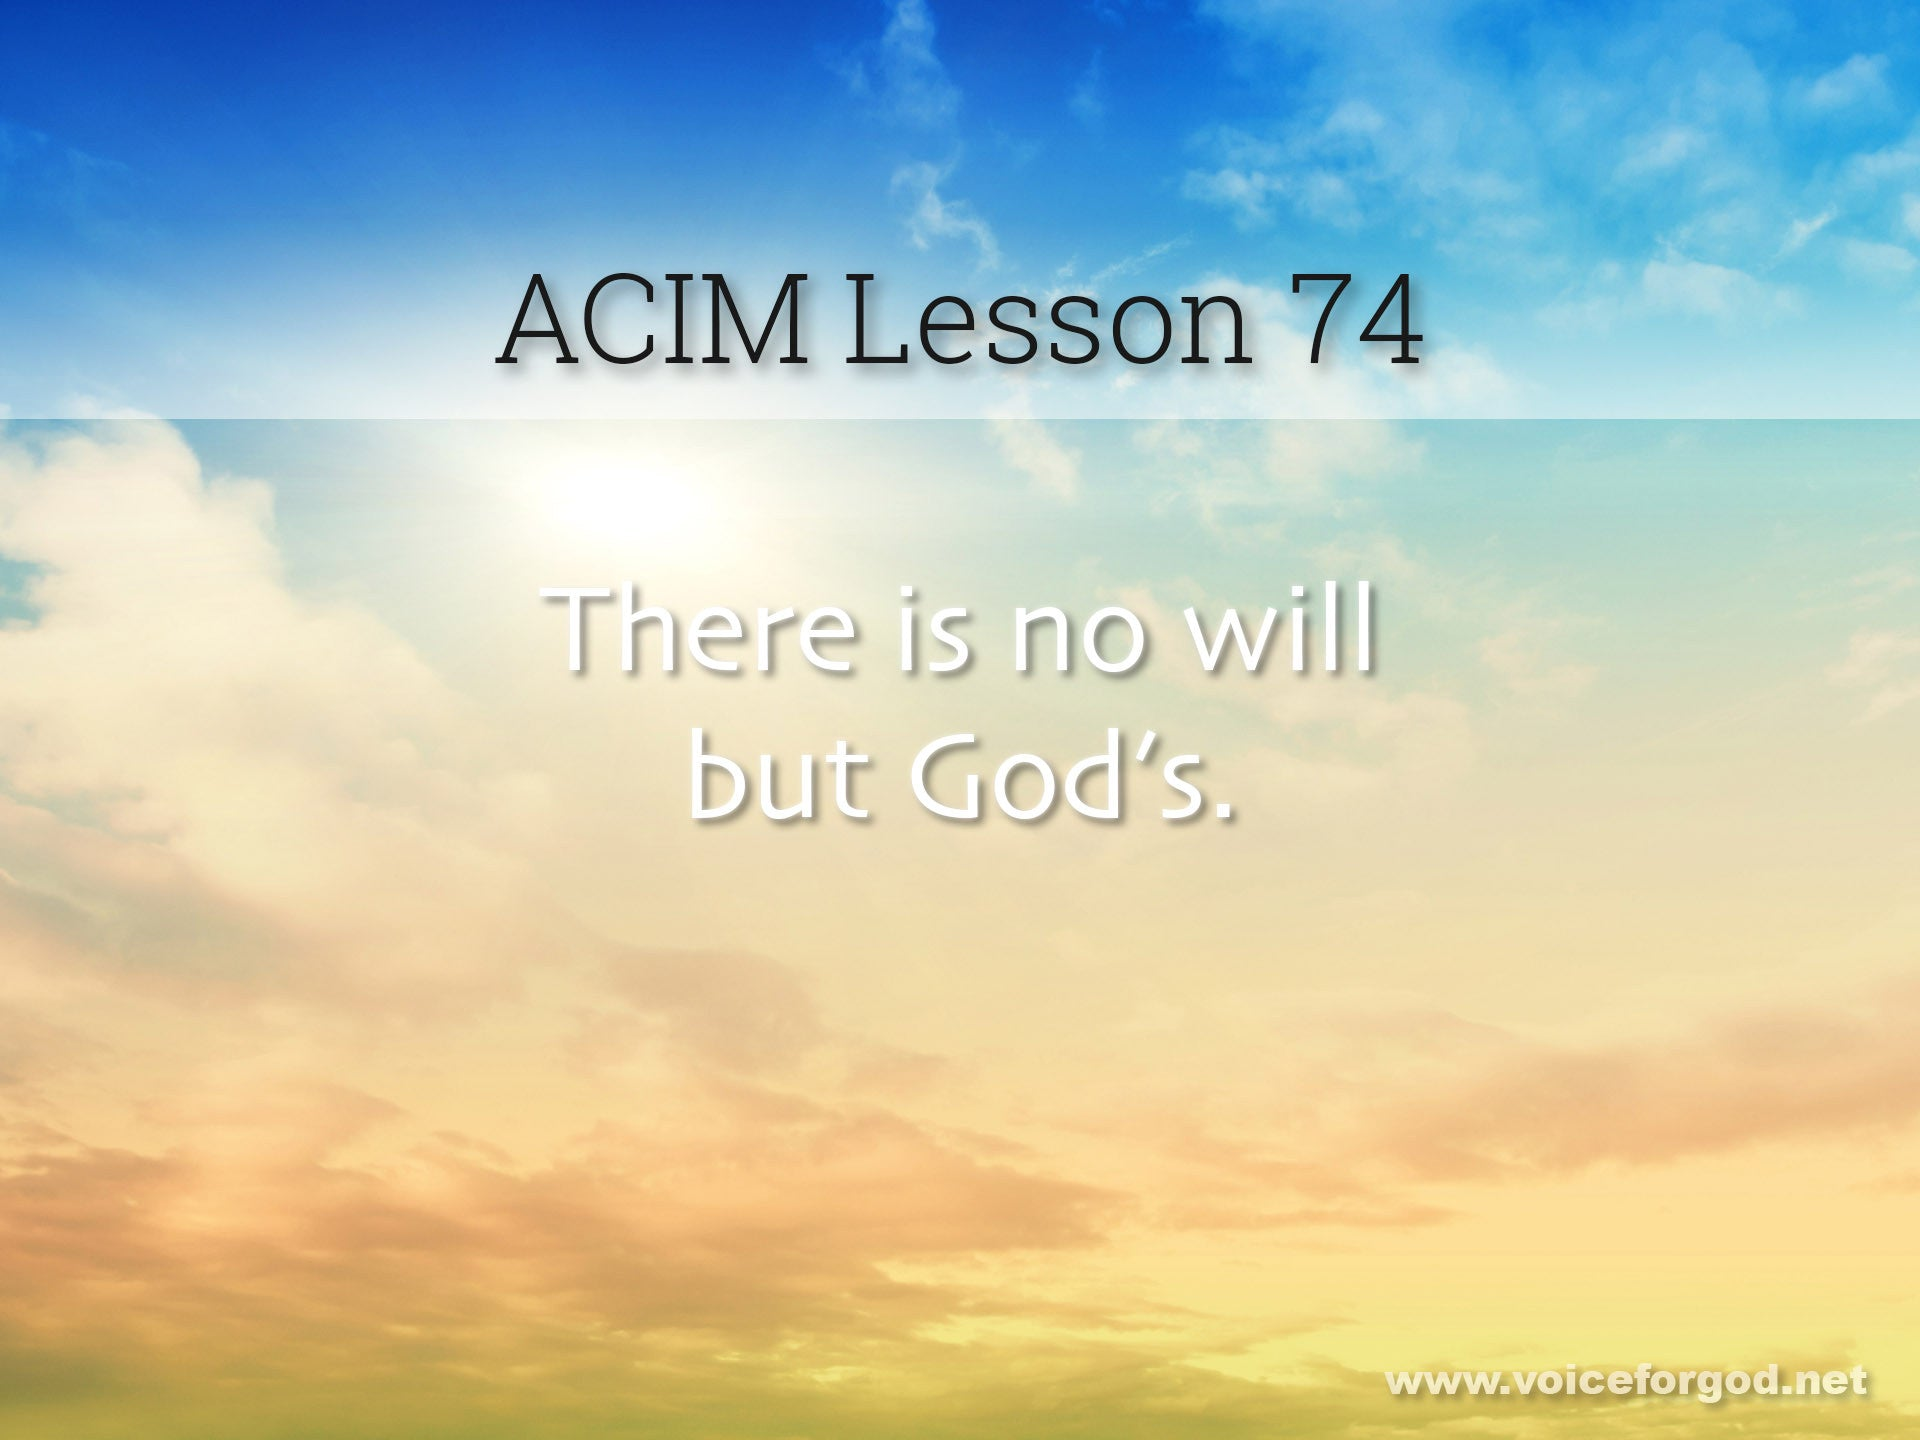 ACIM Lesson 74 - A Course in Miracles Workbook Lesson 74